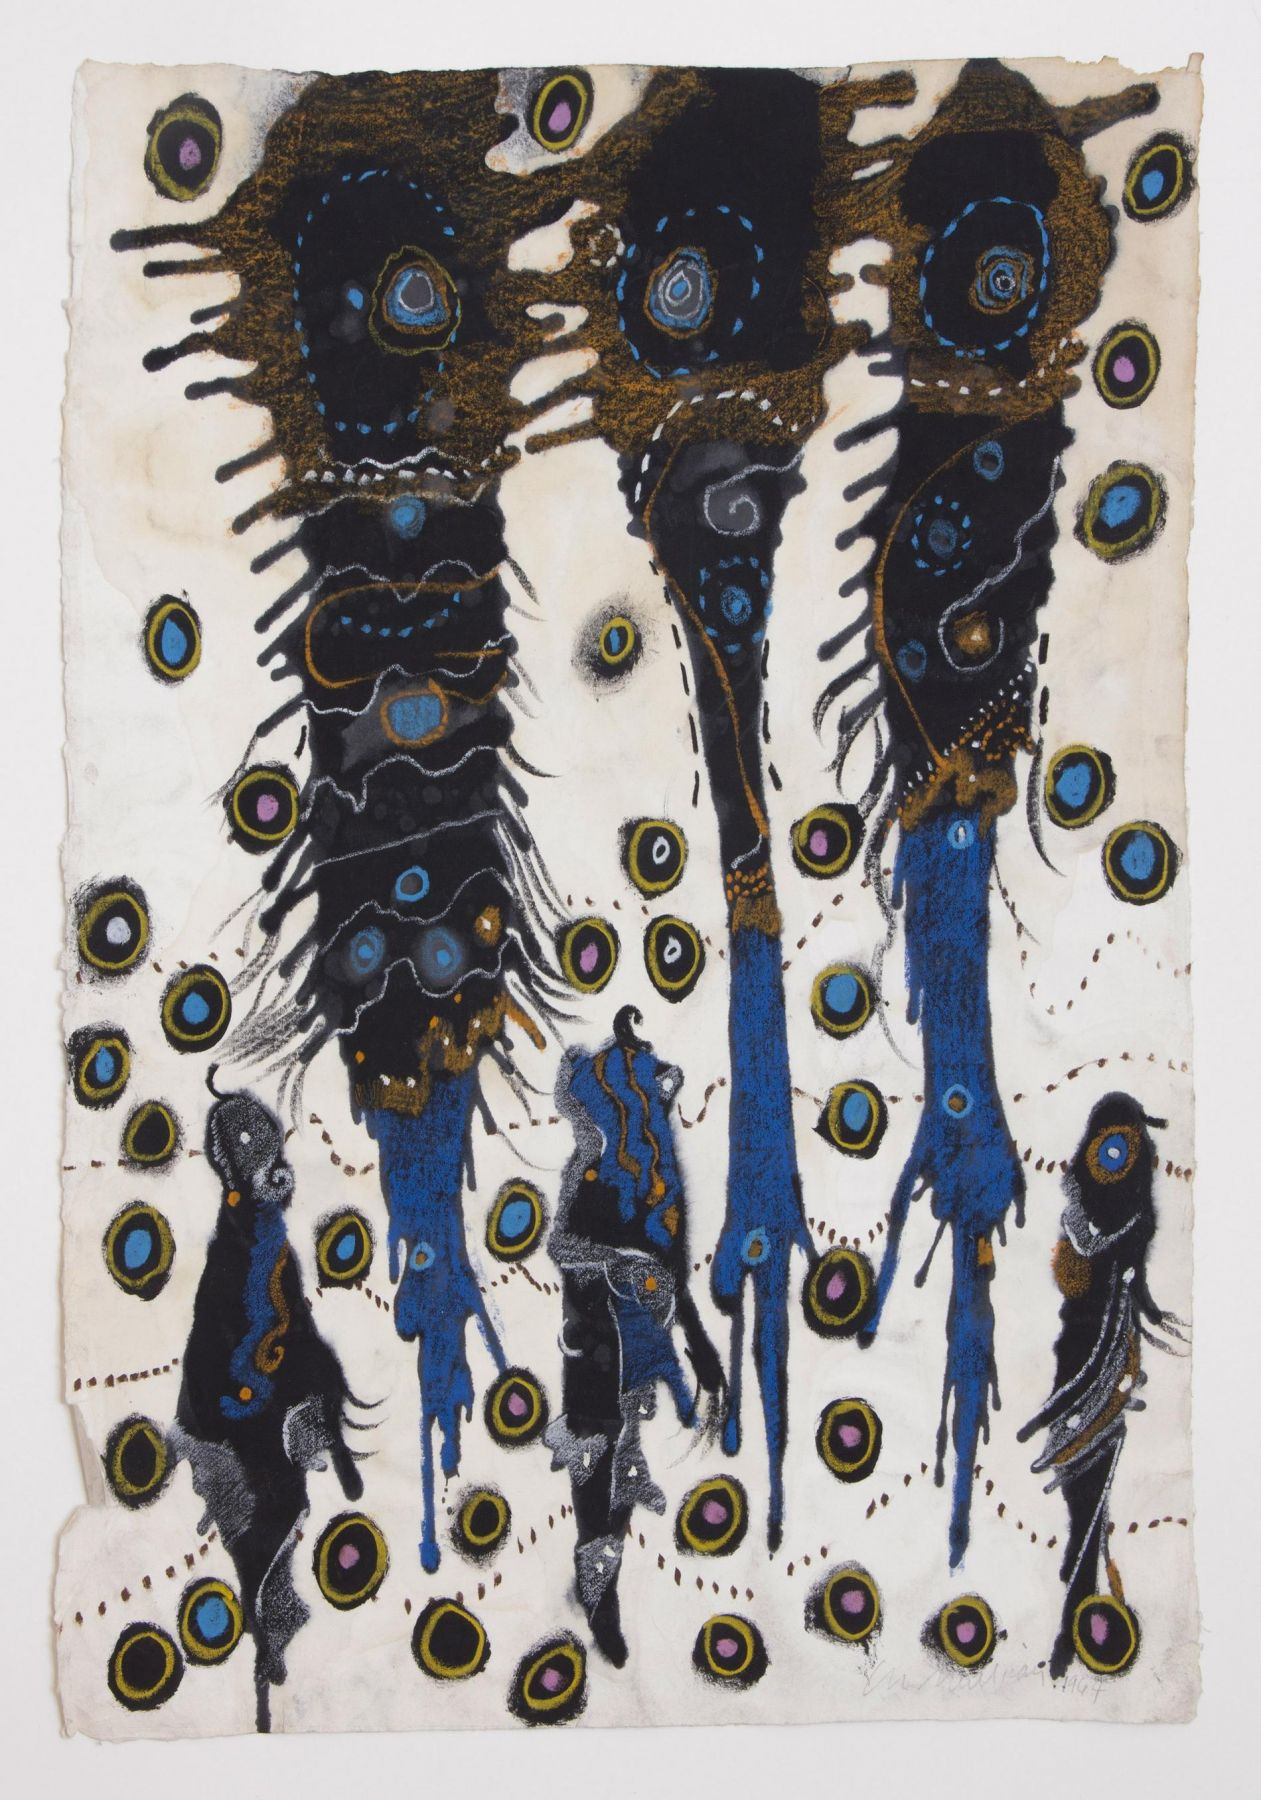 , LEE MULLICAN, Wedding Party, 1964, Mixed media, 24 1/2 x 20 in.